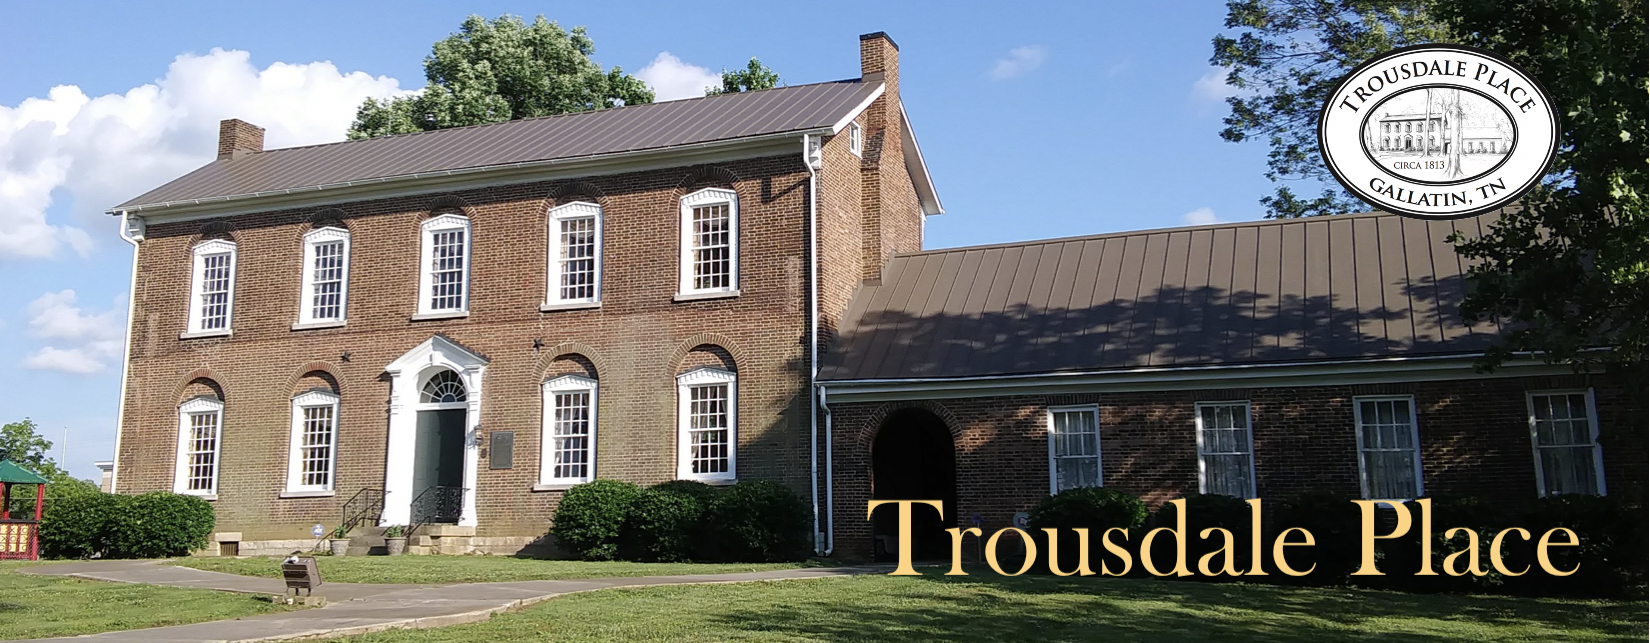 Historic Trousdale Place in Gallatin, TN